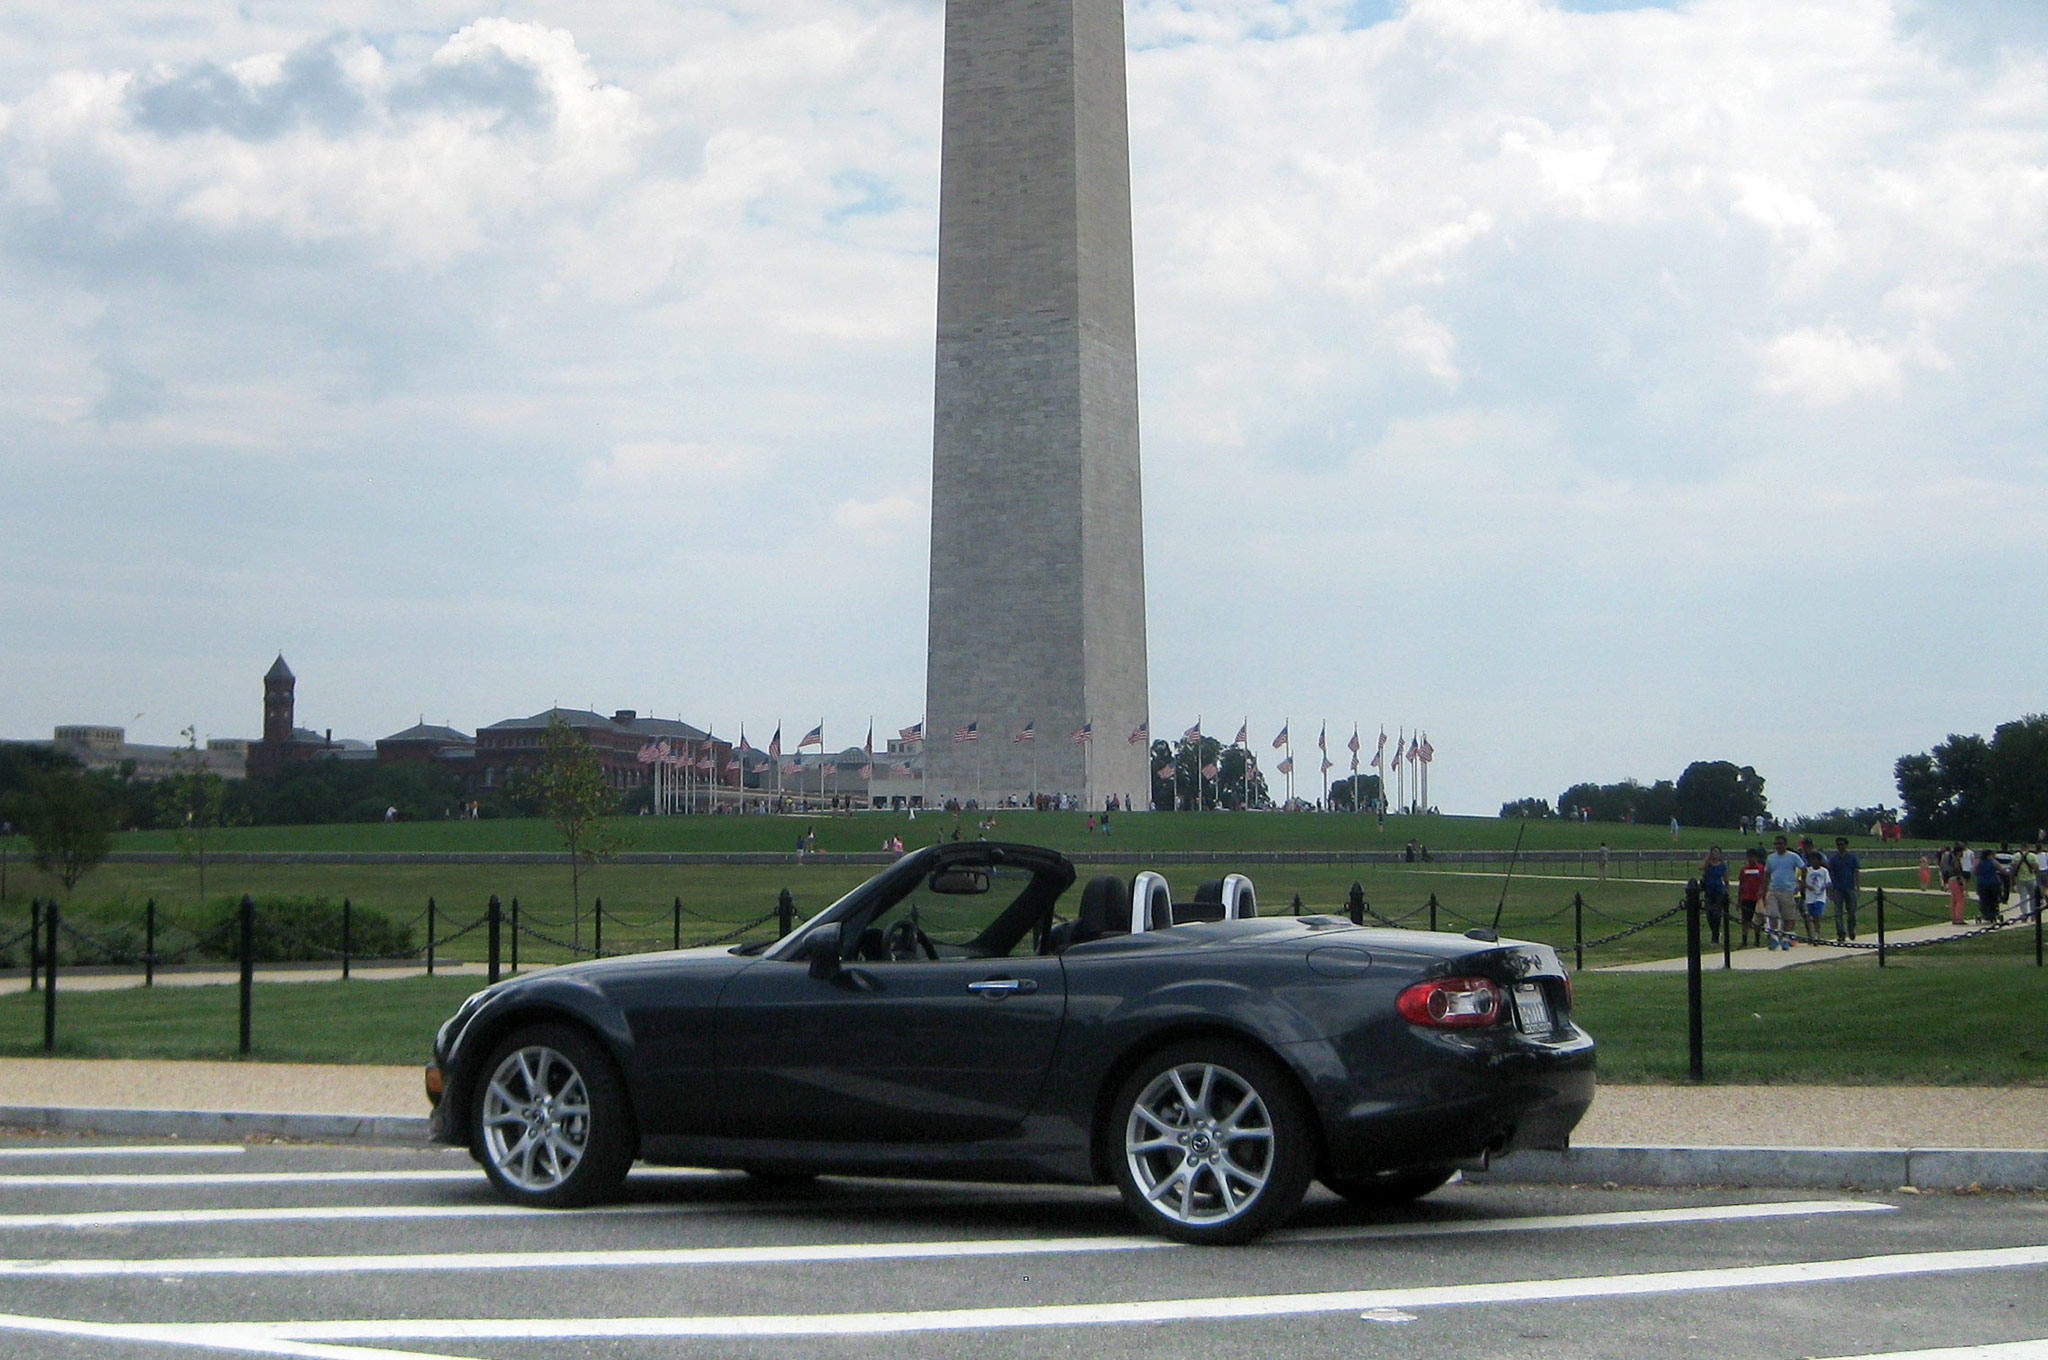 2014 Mazda Miata GT Profile By Washington Monument1